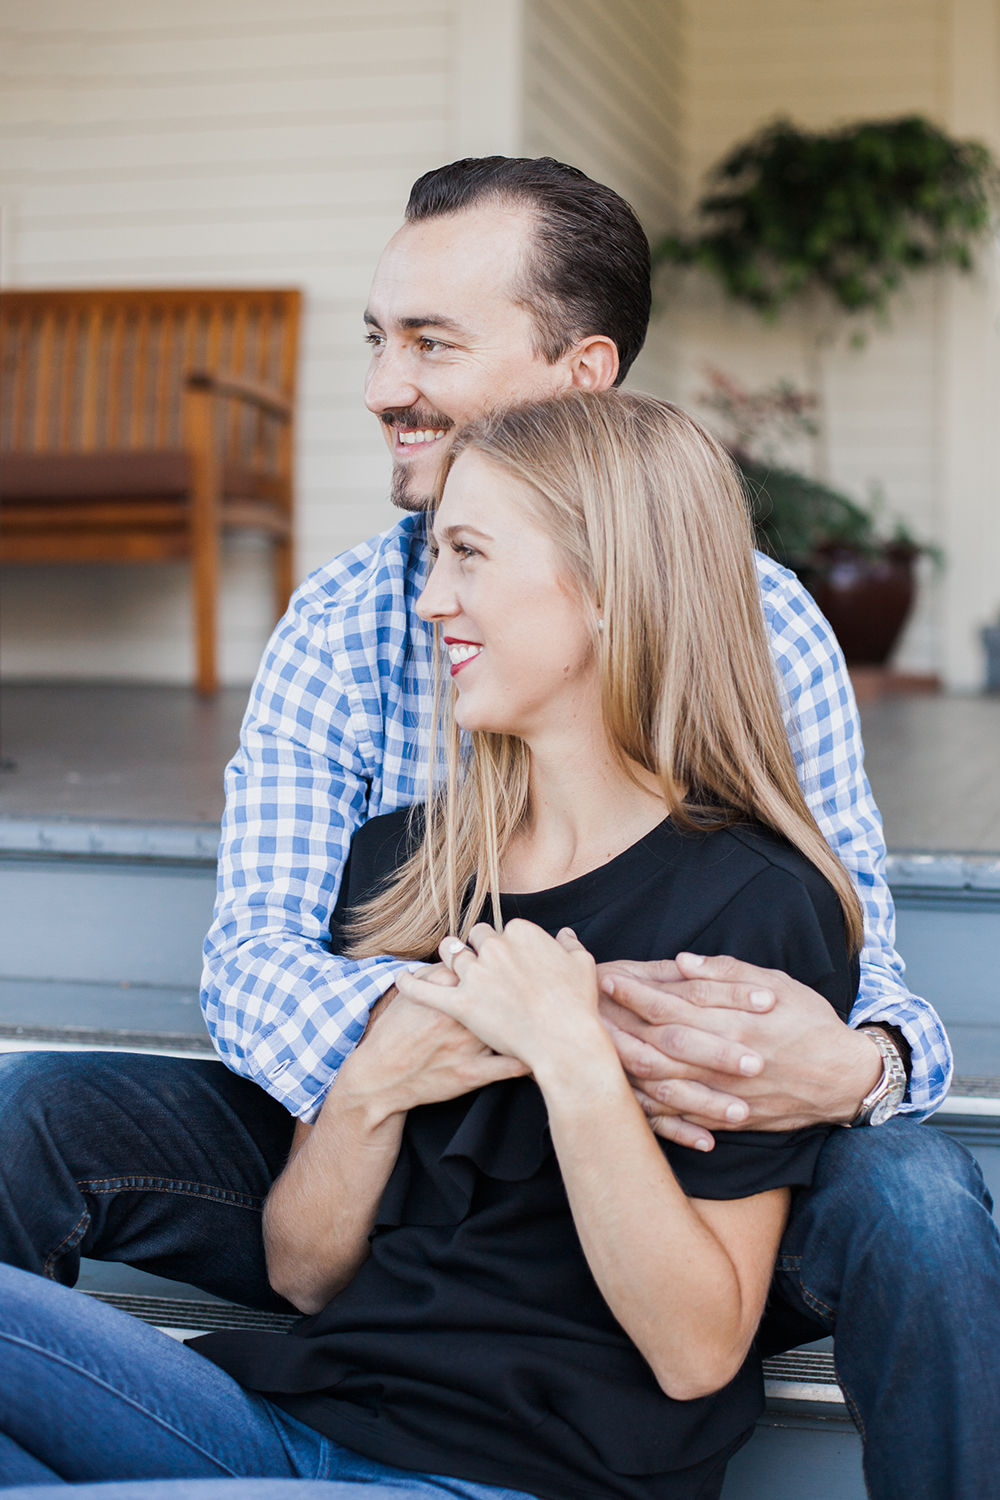 Couple sitting on steps during their engagement session at Cavallo Point in Marin, California.